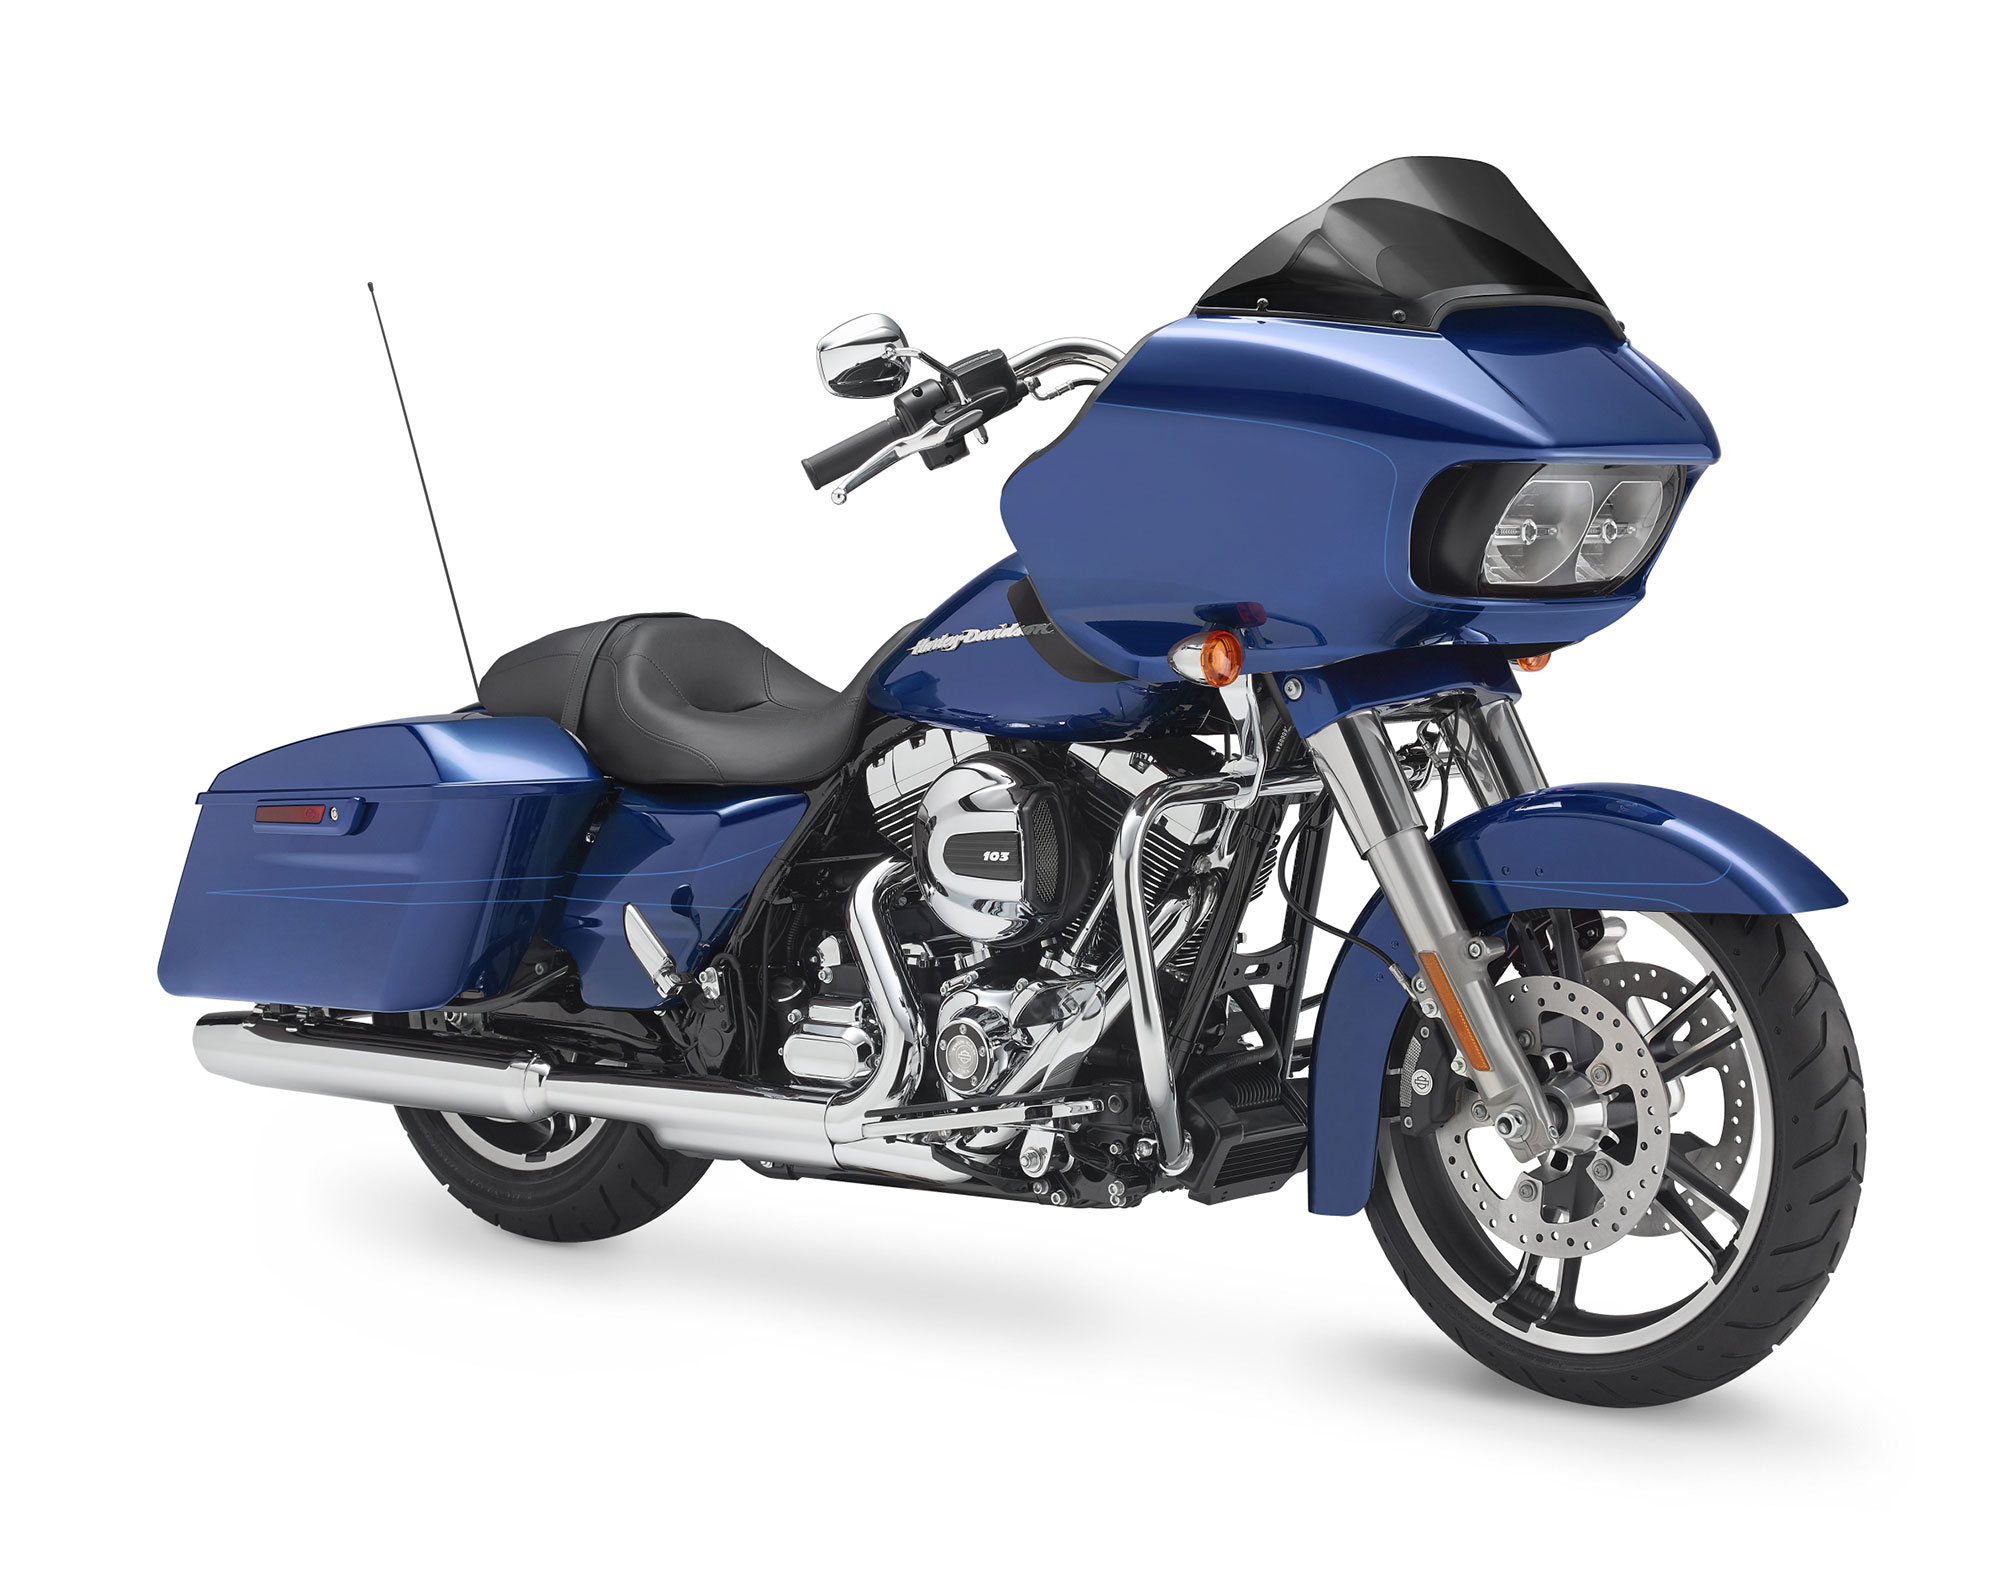 pc wallpaper Harley-Davidson Road Glide Special 2015